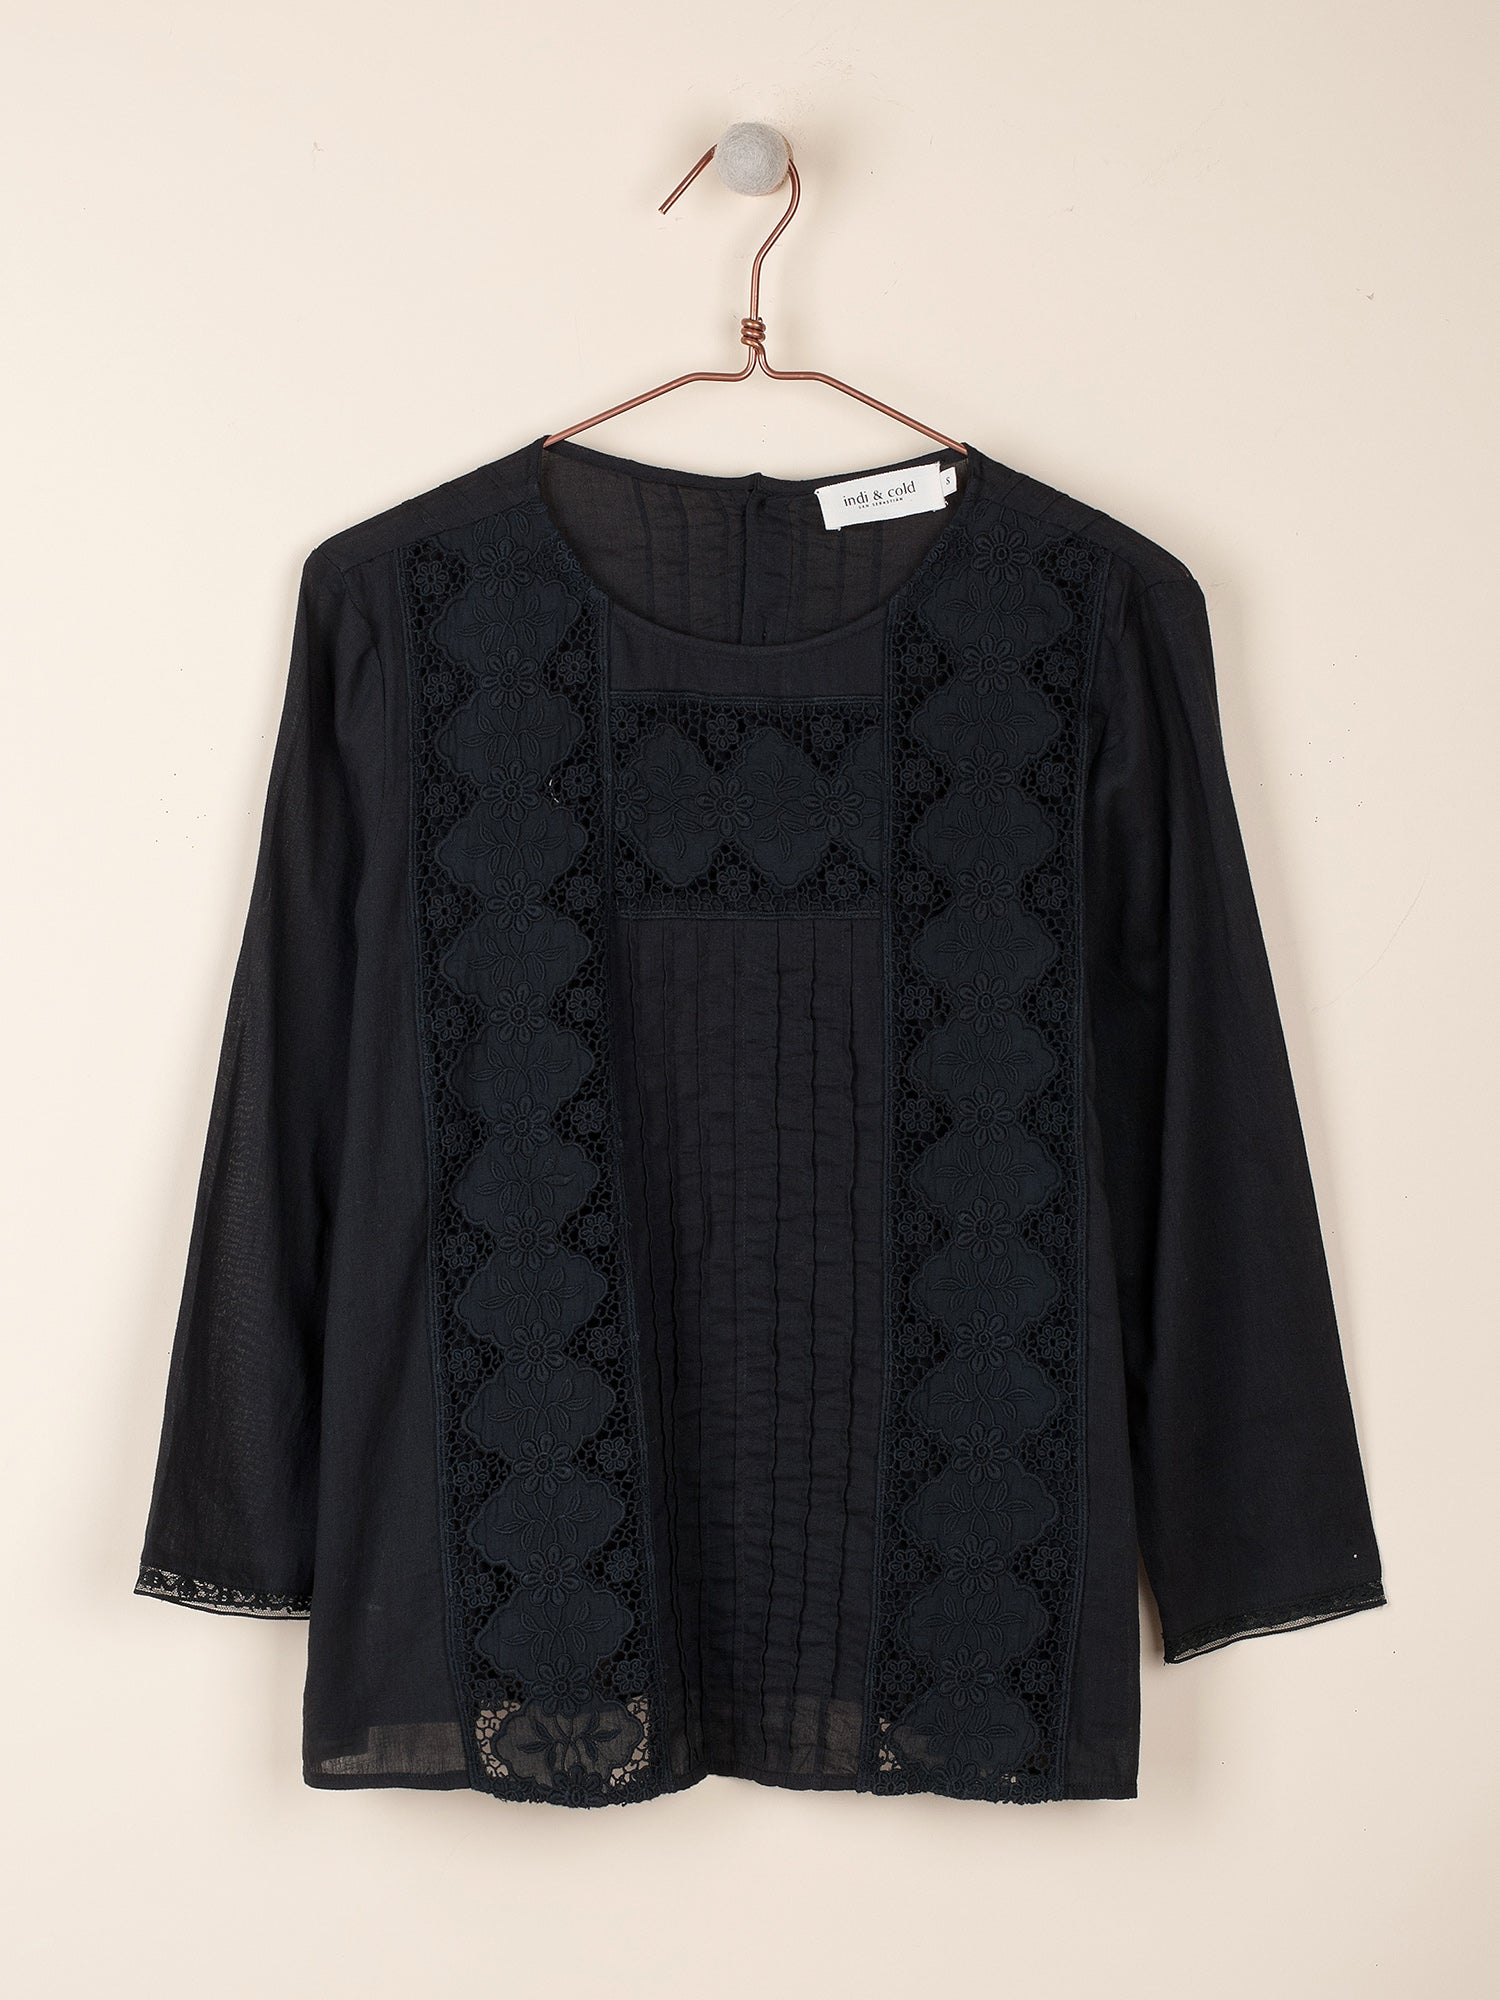 Indi & Cold Camisa ls Blouse - 2 colours available.